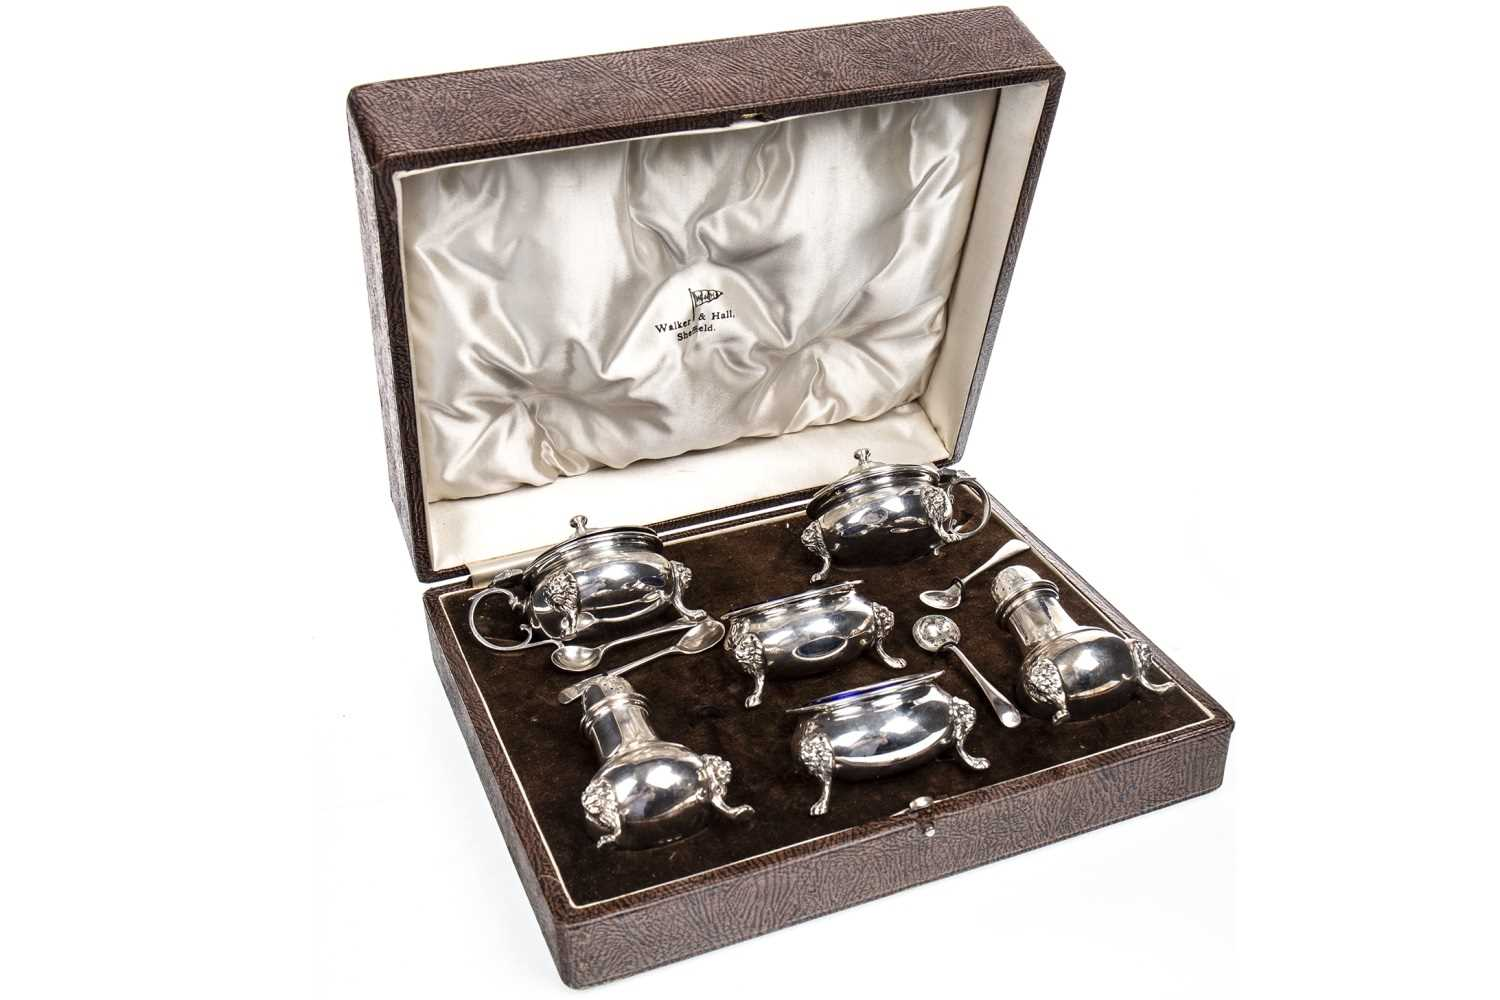 Lot 805-A CASED SILVER CRUET SET